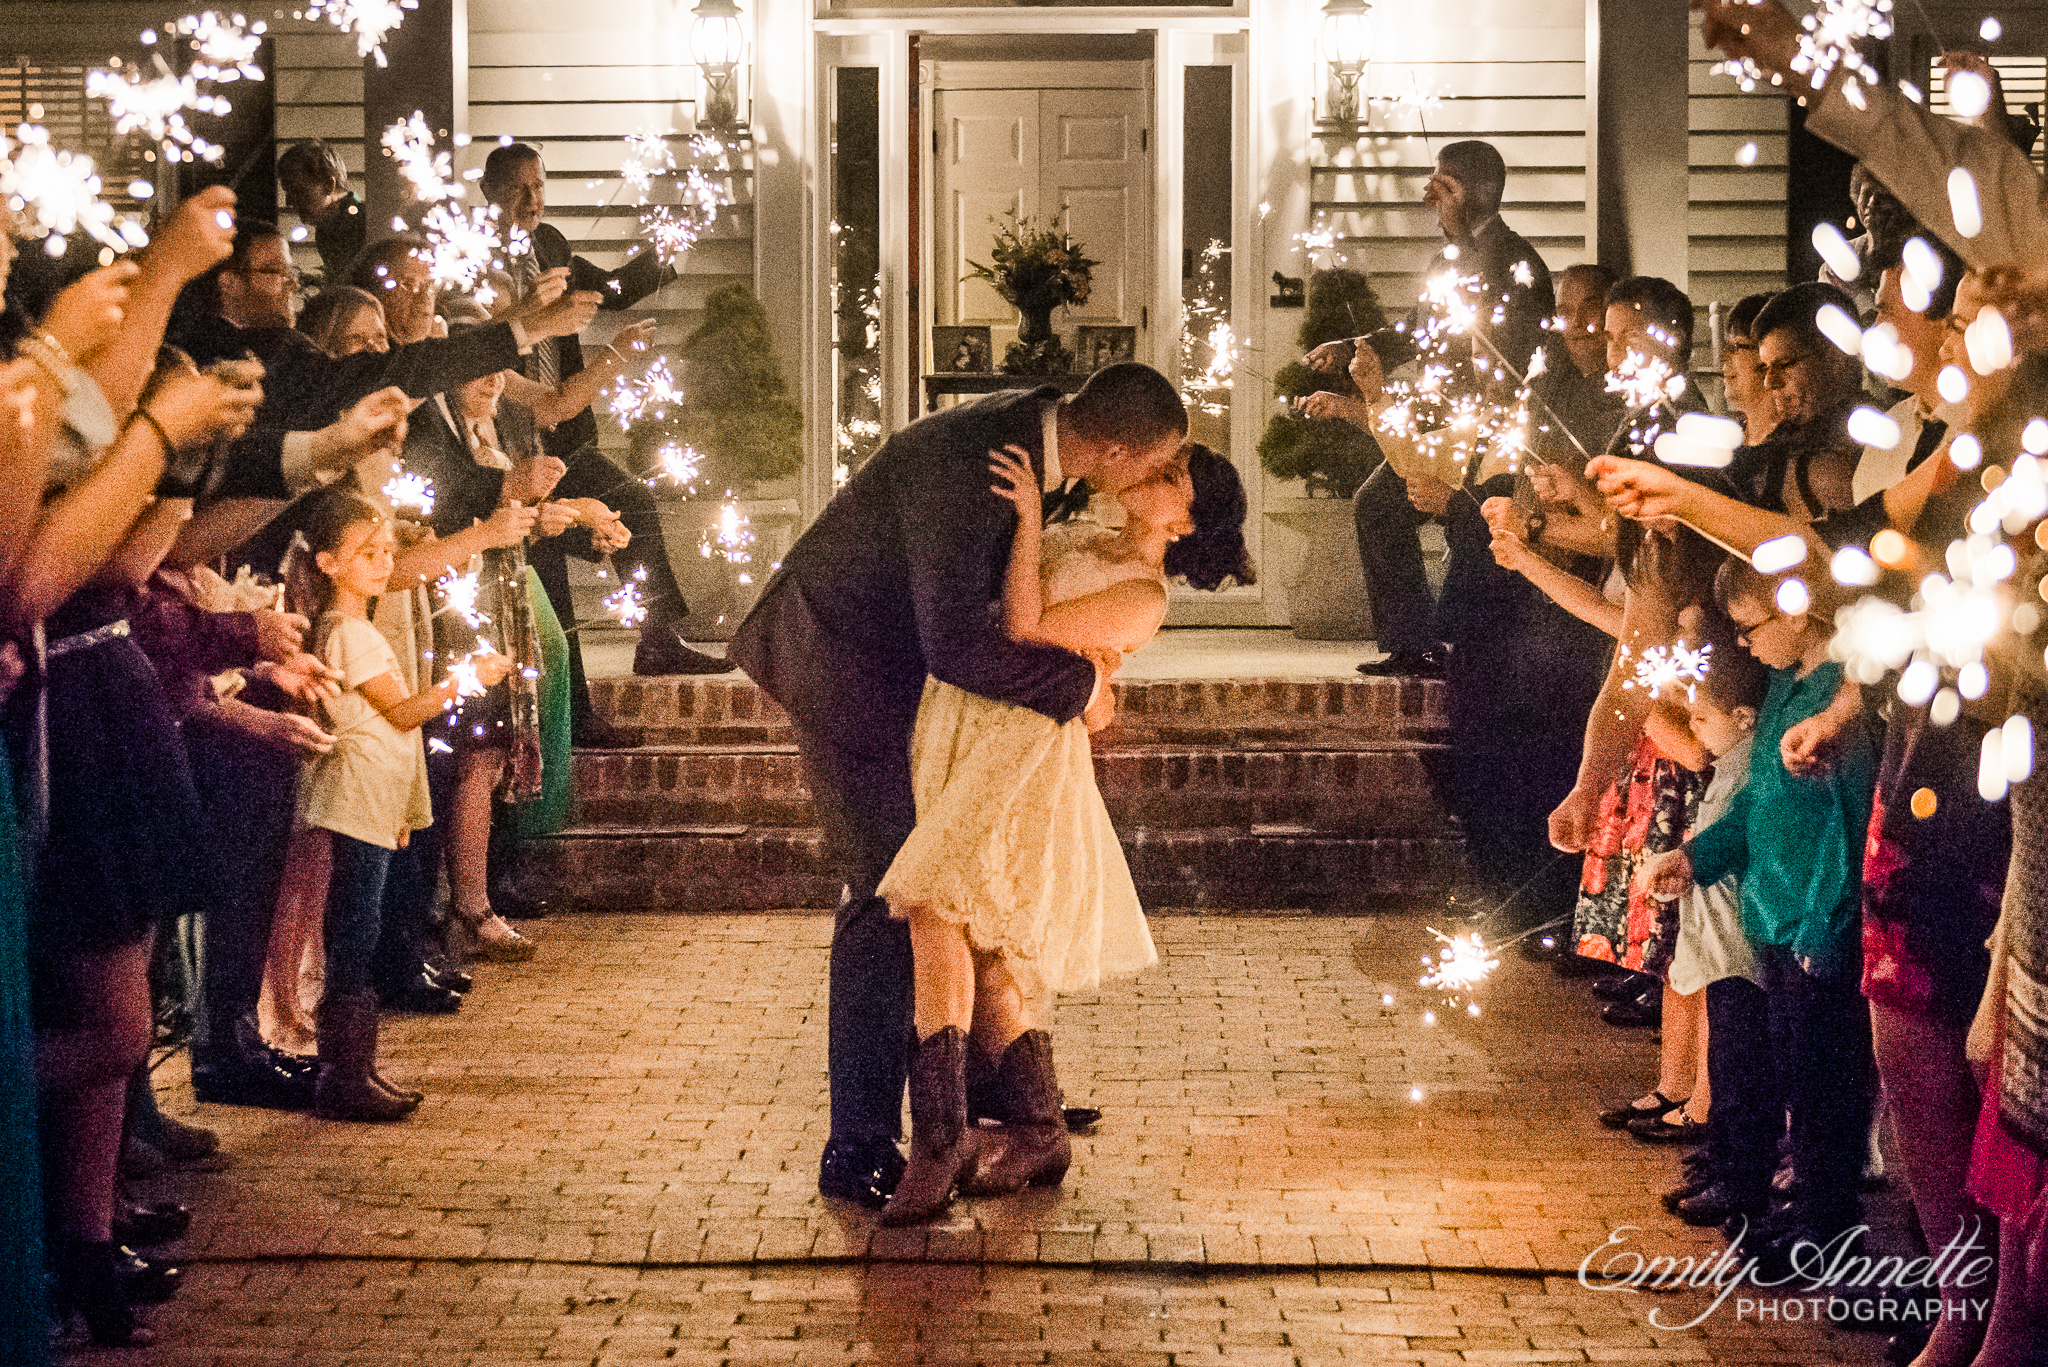 A bride and groom stop for a kiss during their sparkler exit after their country wedding reception at Amber Grove near Richmond, Virginia